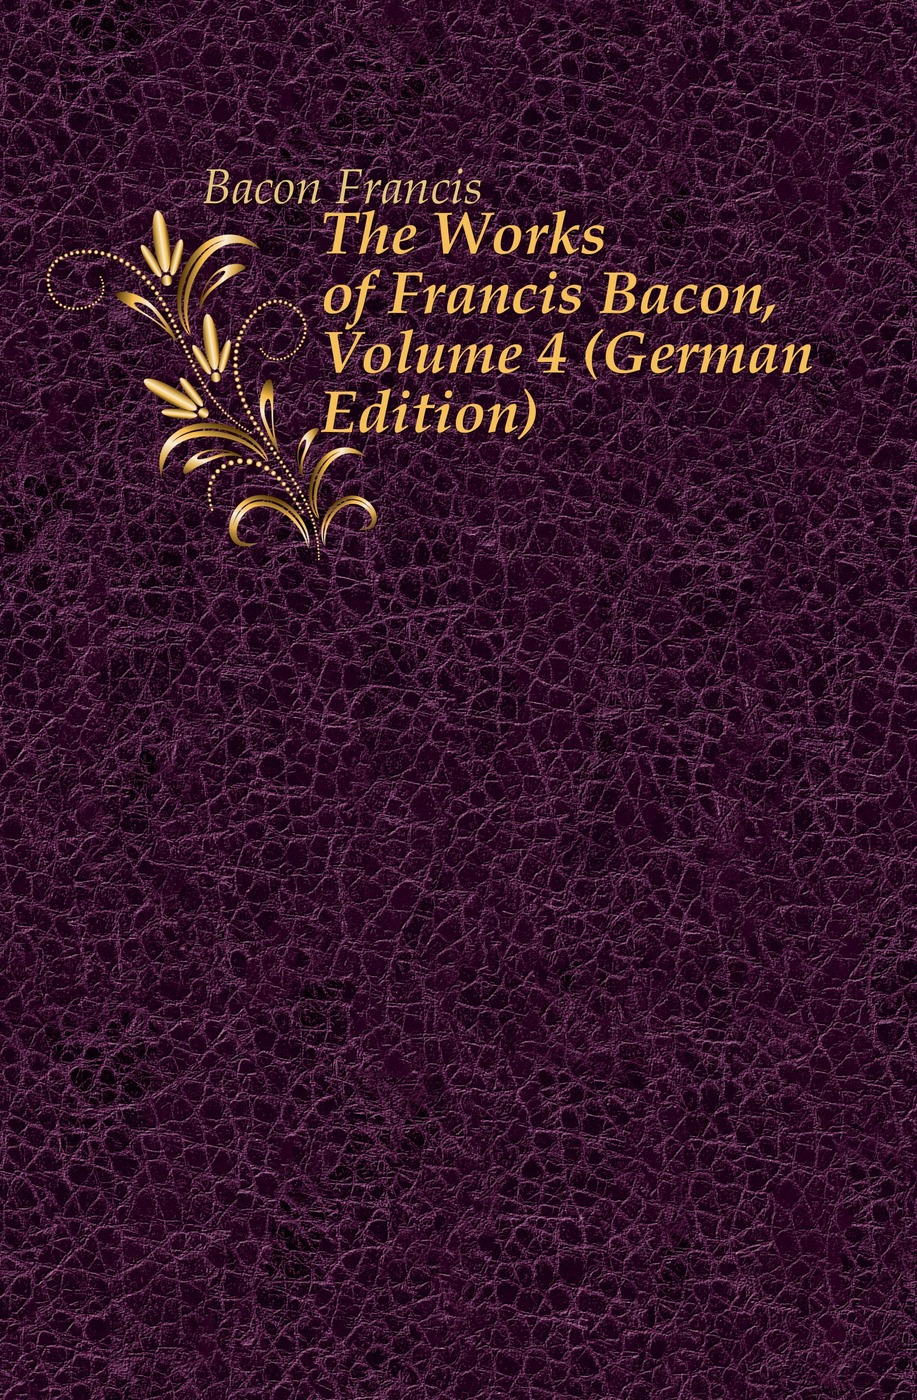 Фрэнсис Бэкон The Works of Francis Bacon, Volume 4 (German Edition) фрэнсис бэкон the works of francis bacon volume 4 german edition